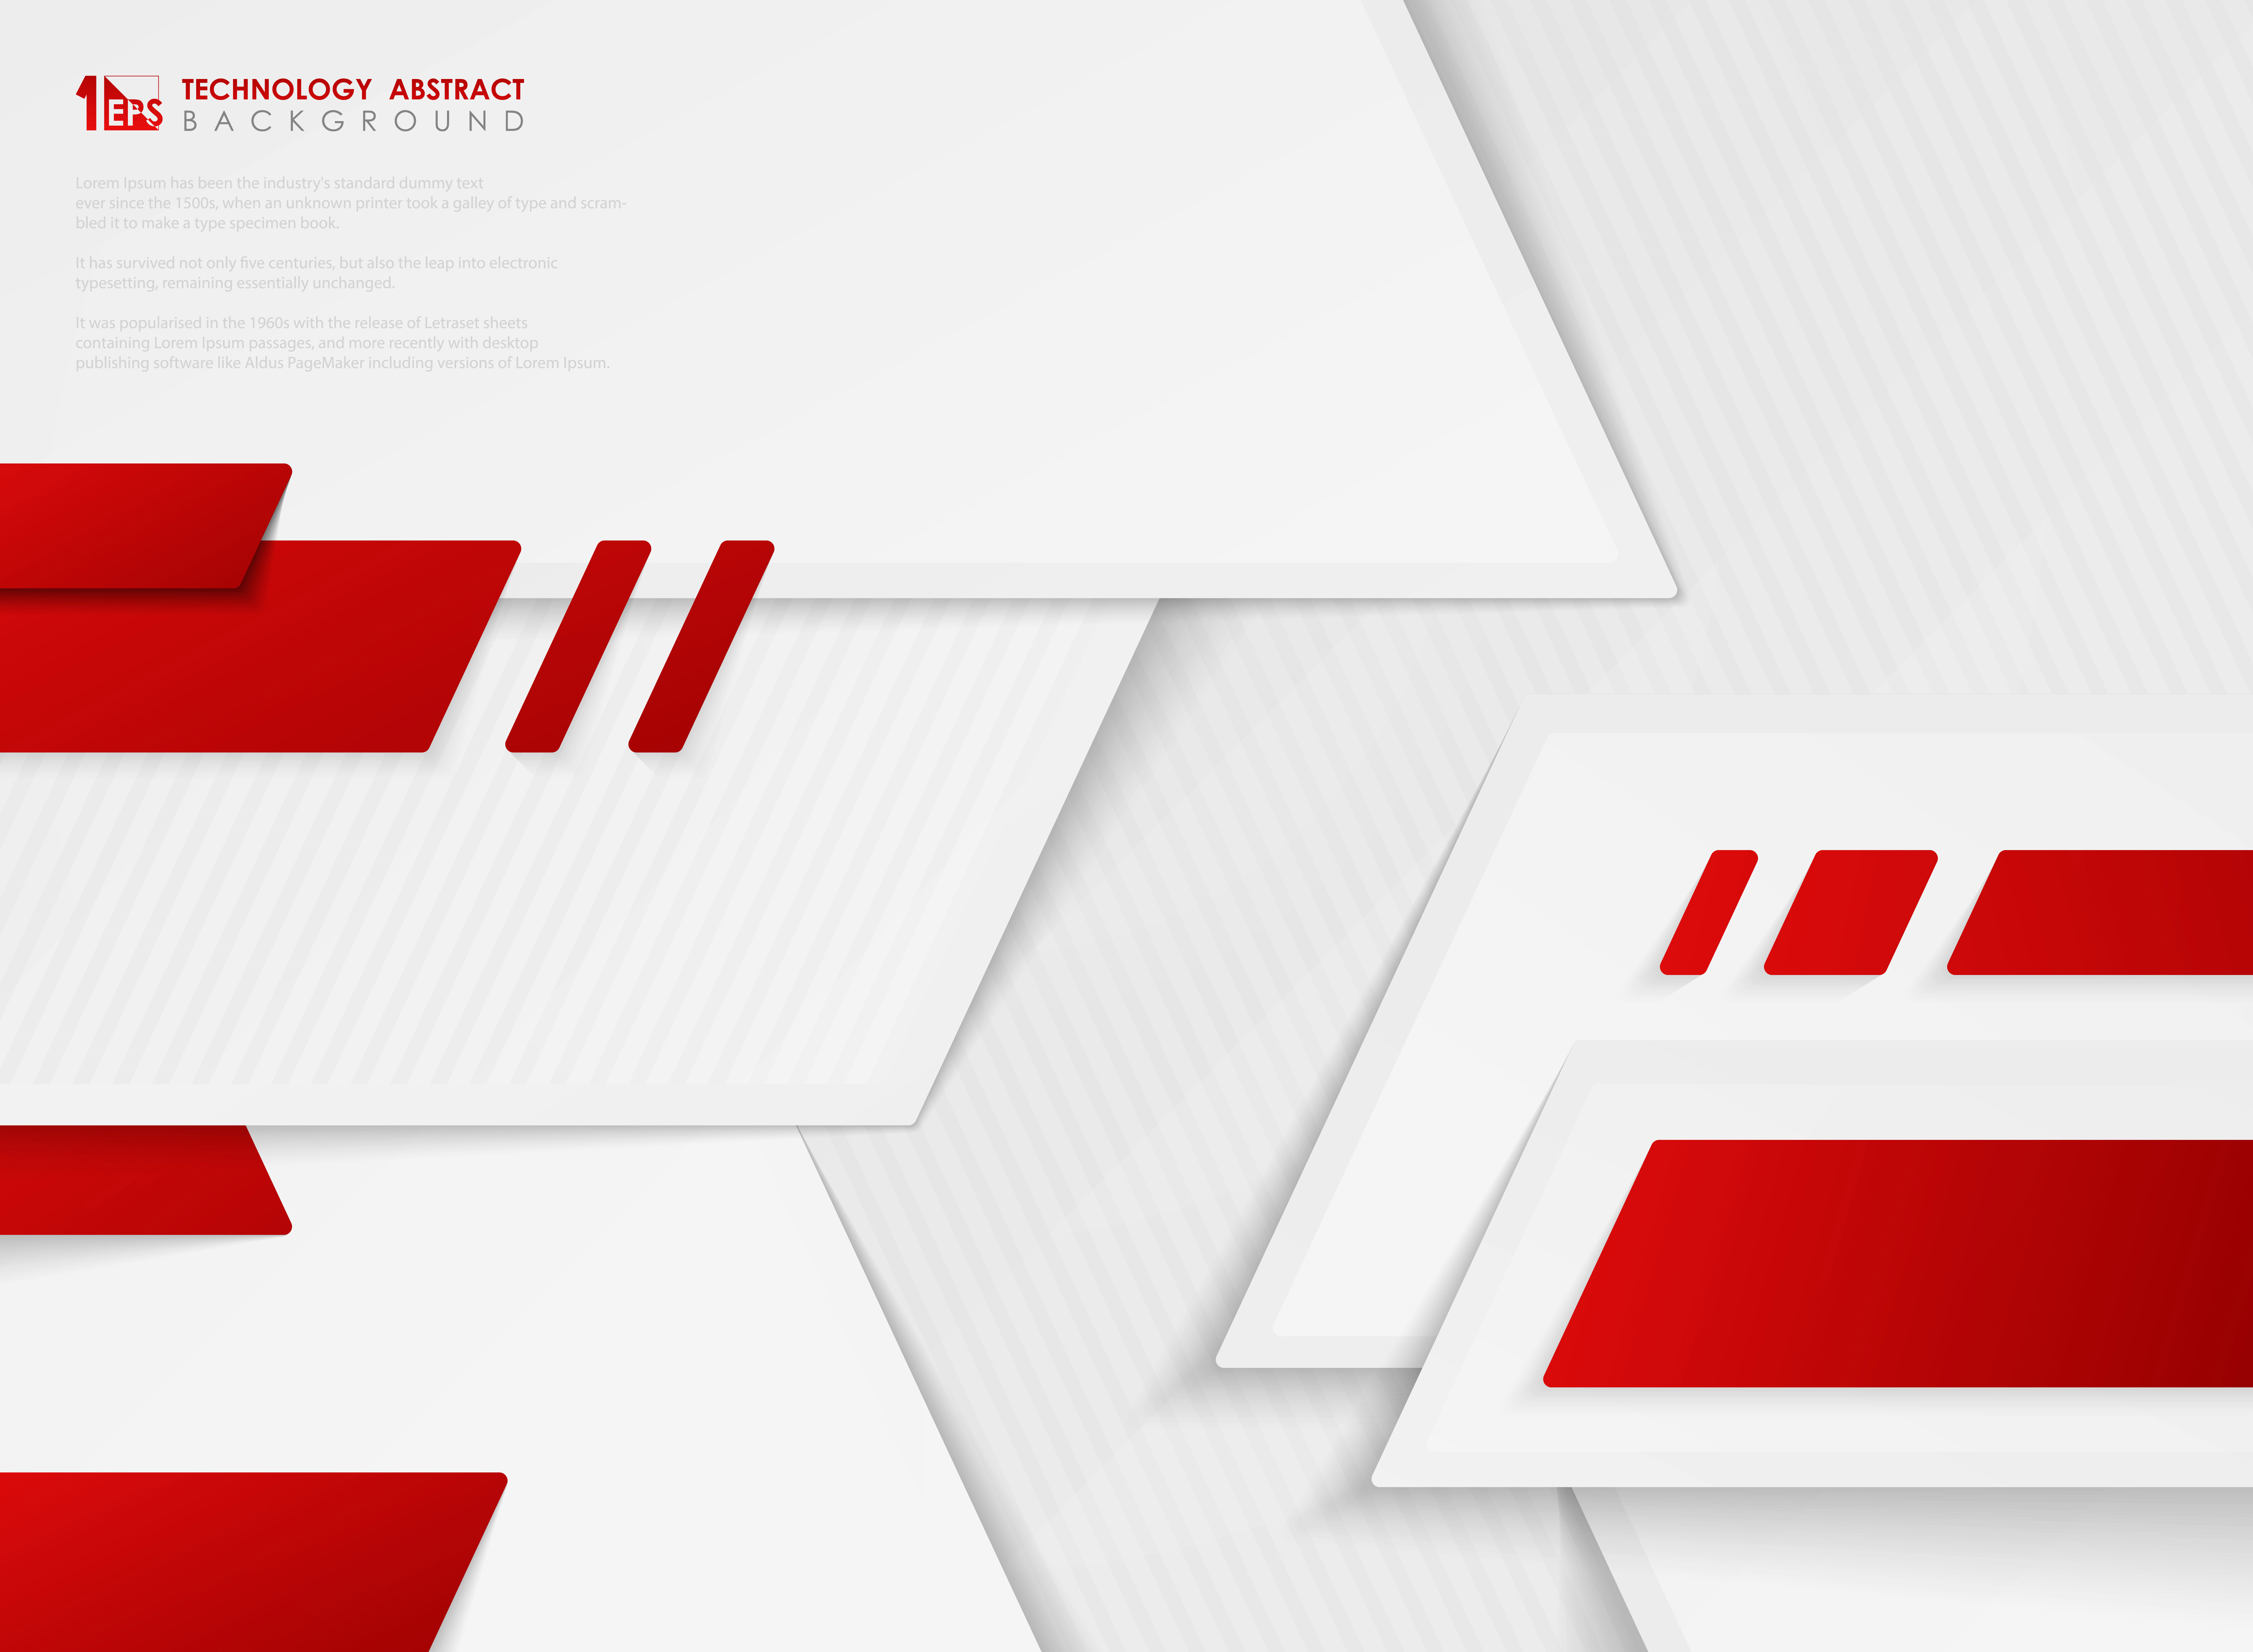 abstract vector gradient red color of technology template on white background illustration vector eps10 download free vectors clipart graphics vector art vecteezy